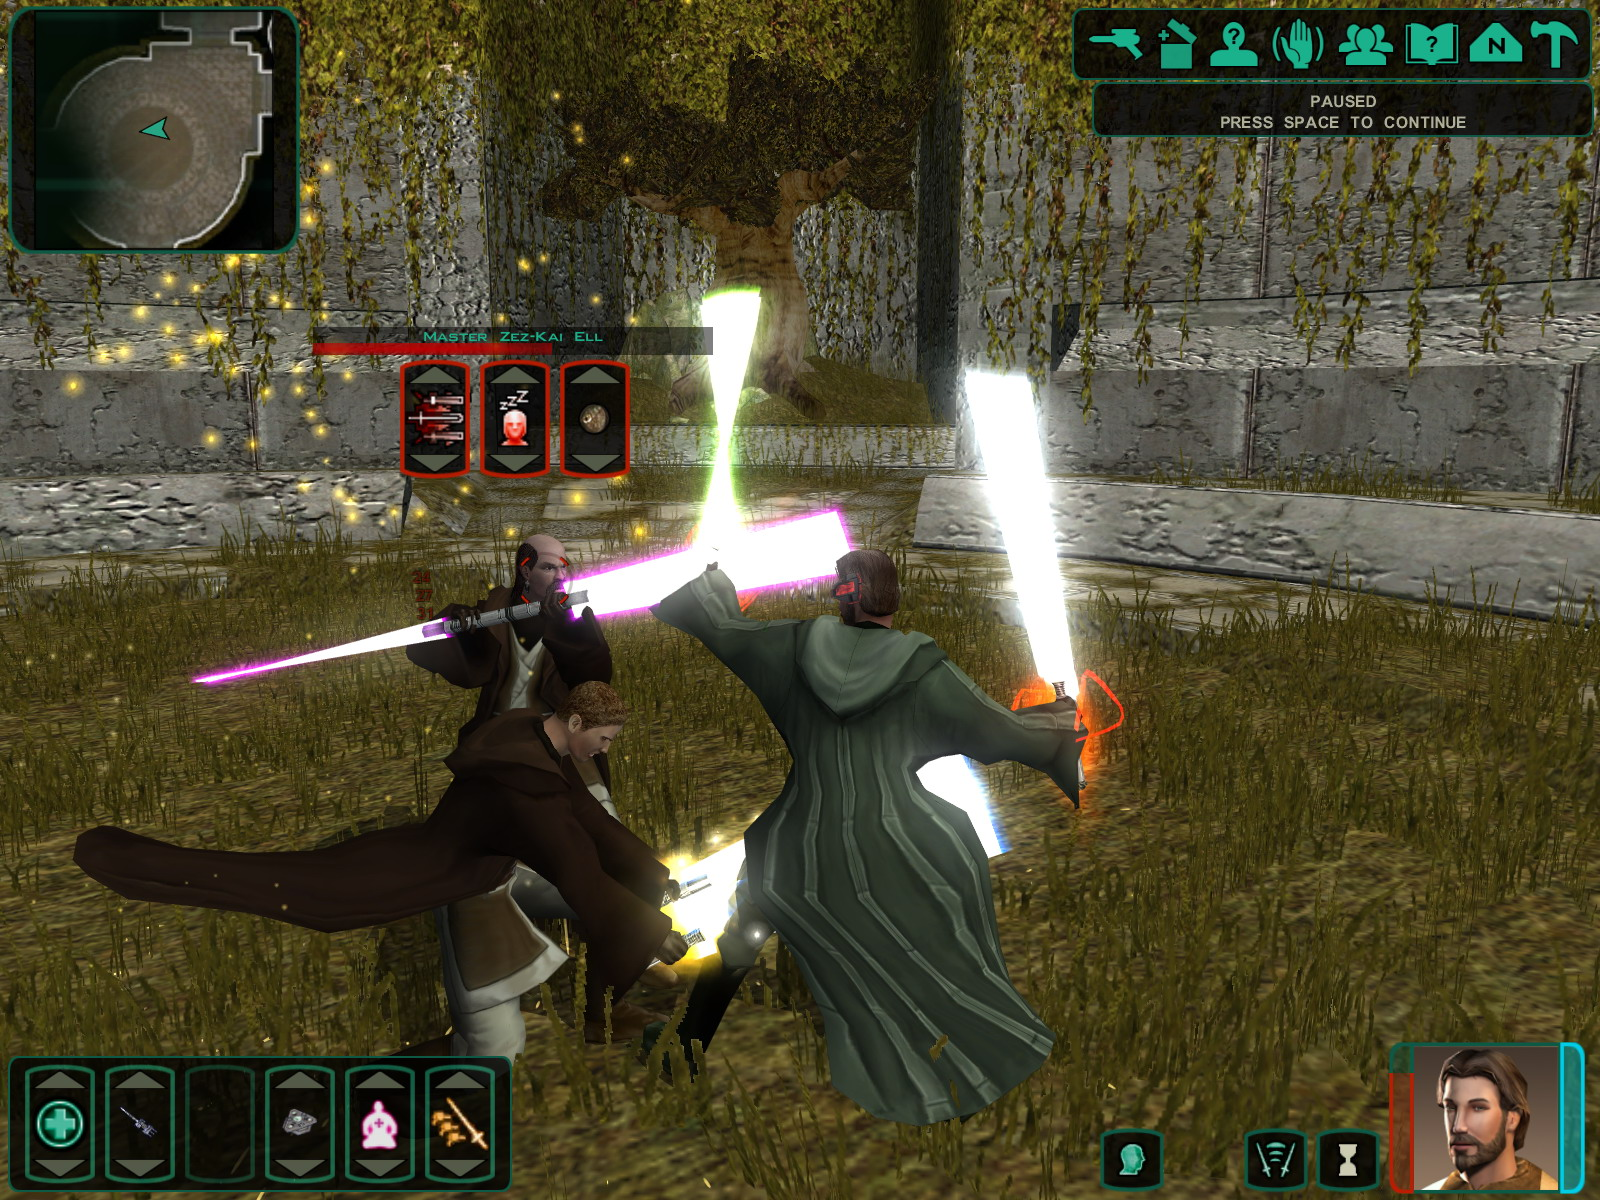 Nude patchs for star wars kotor tsl exposed video